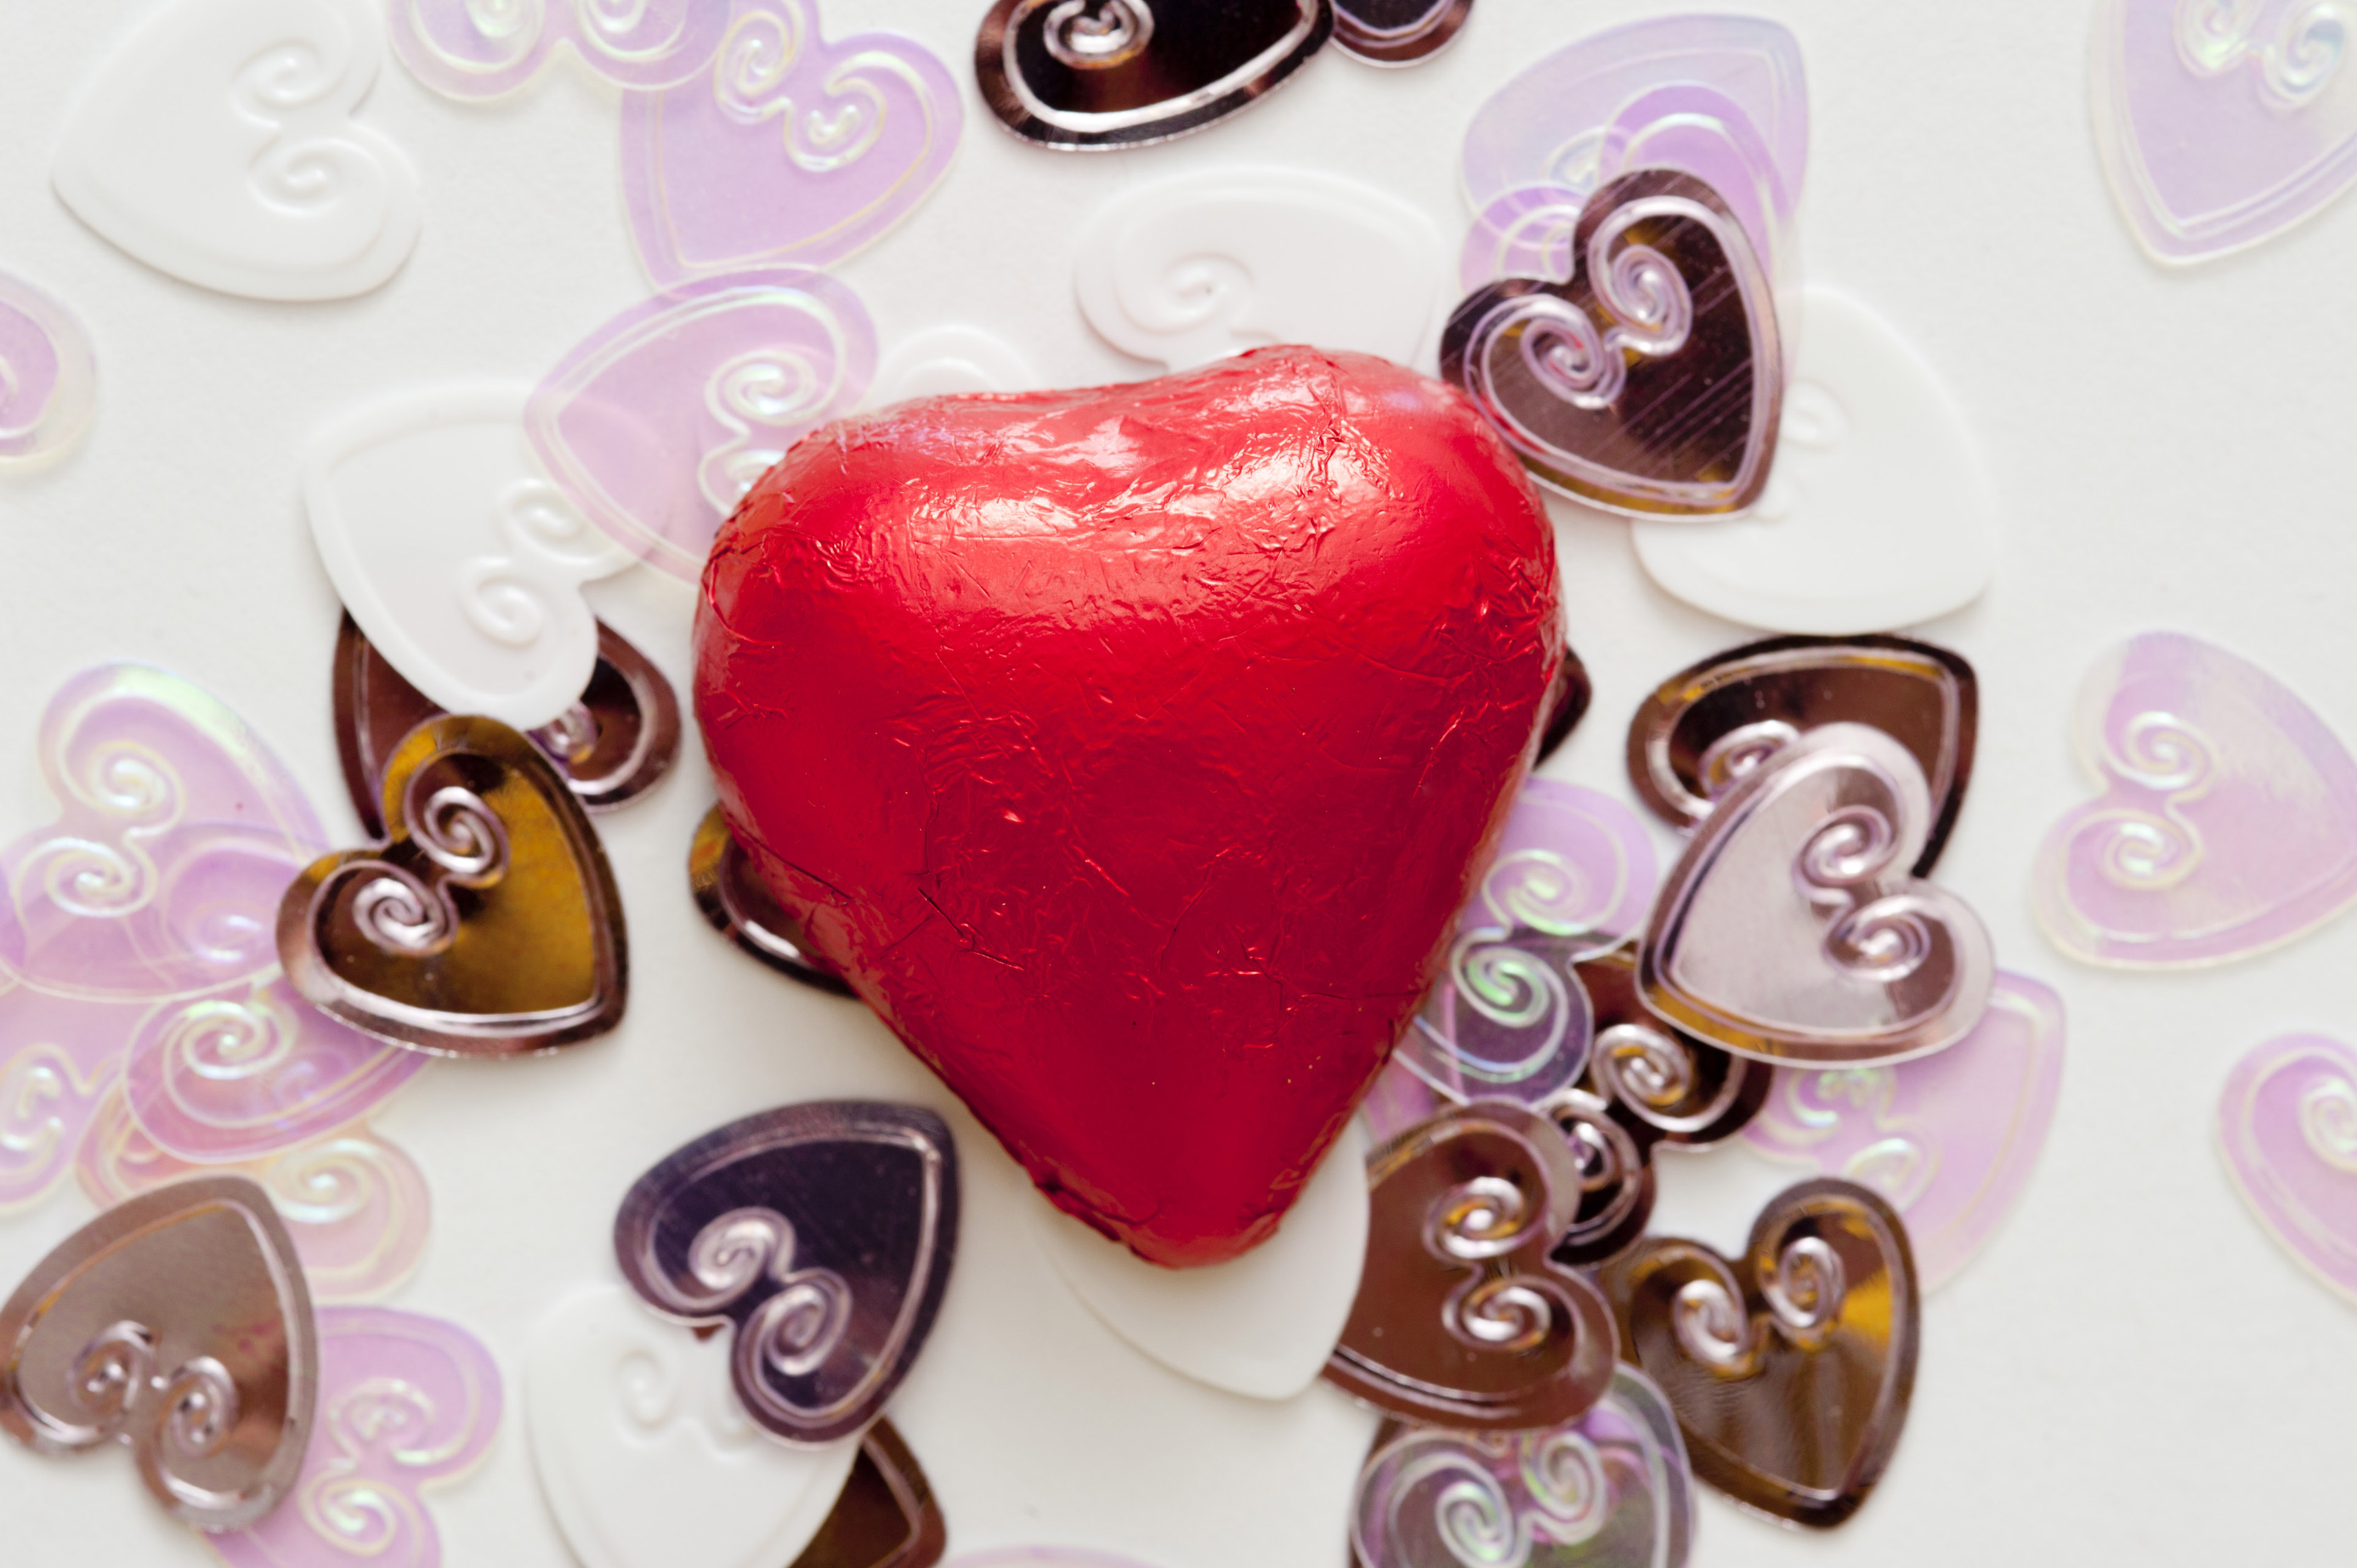 One red, chocolate valentine heart sits on top of a pile of smaller wedding heart decorations.